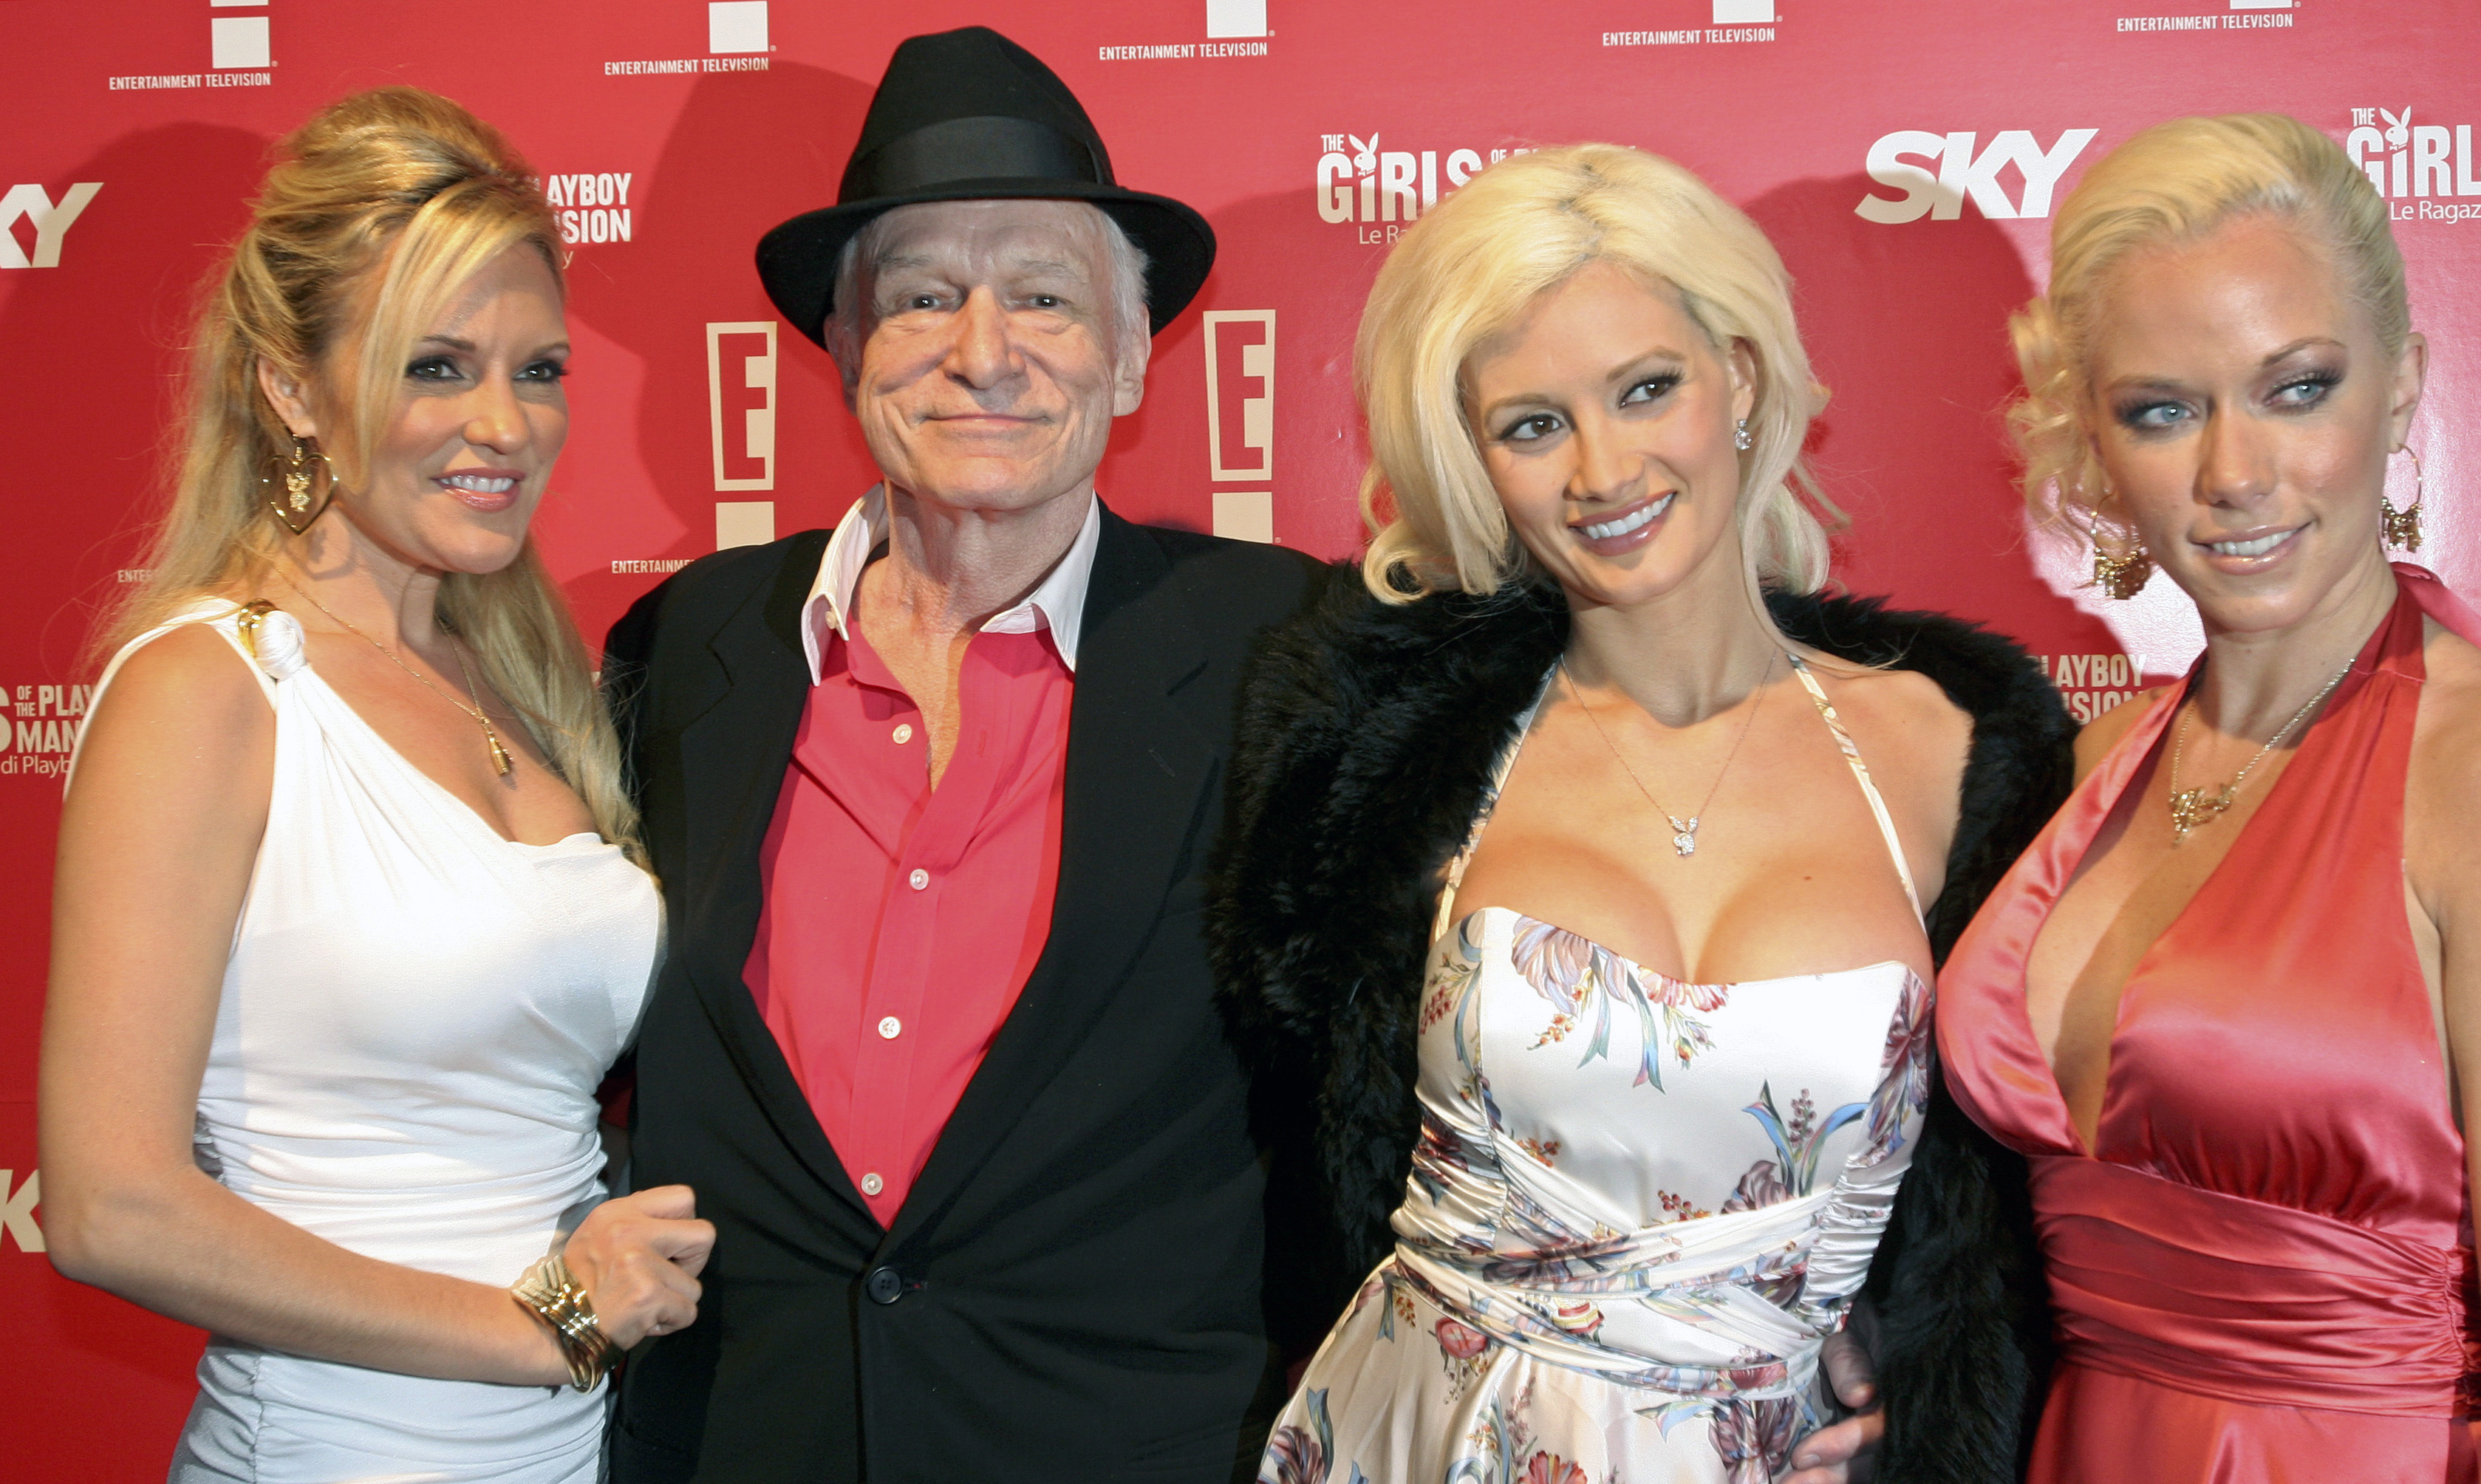 Holly Madison fires back at Kendra Wilkinson's Twitter rant